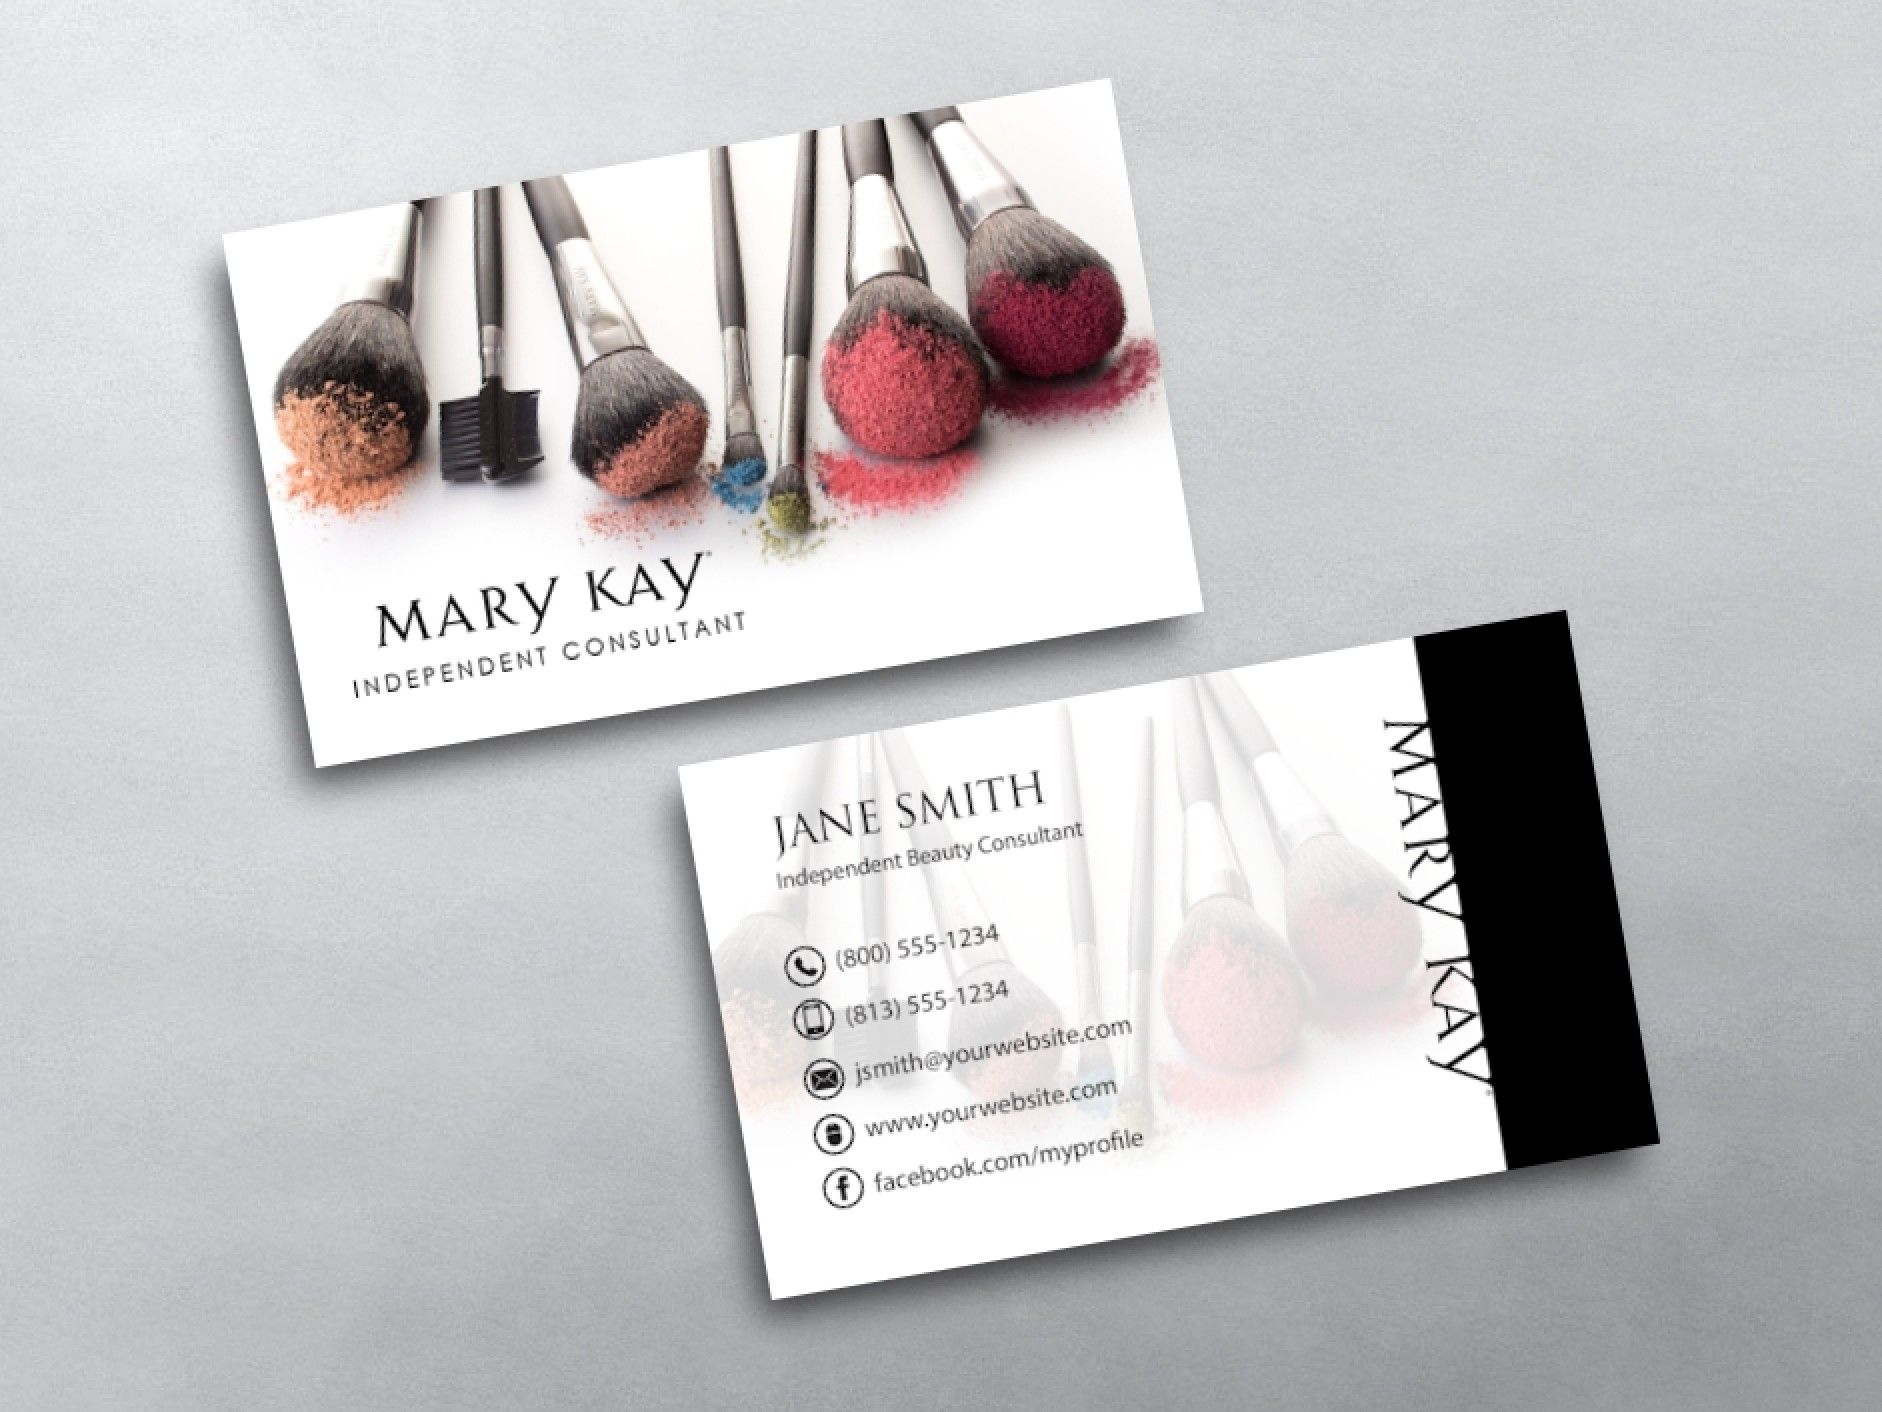 Mary Kay Business Cards Free Shipping Mary Kay Business Cards Mary Kay Mary Kay Business